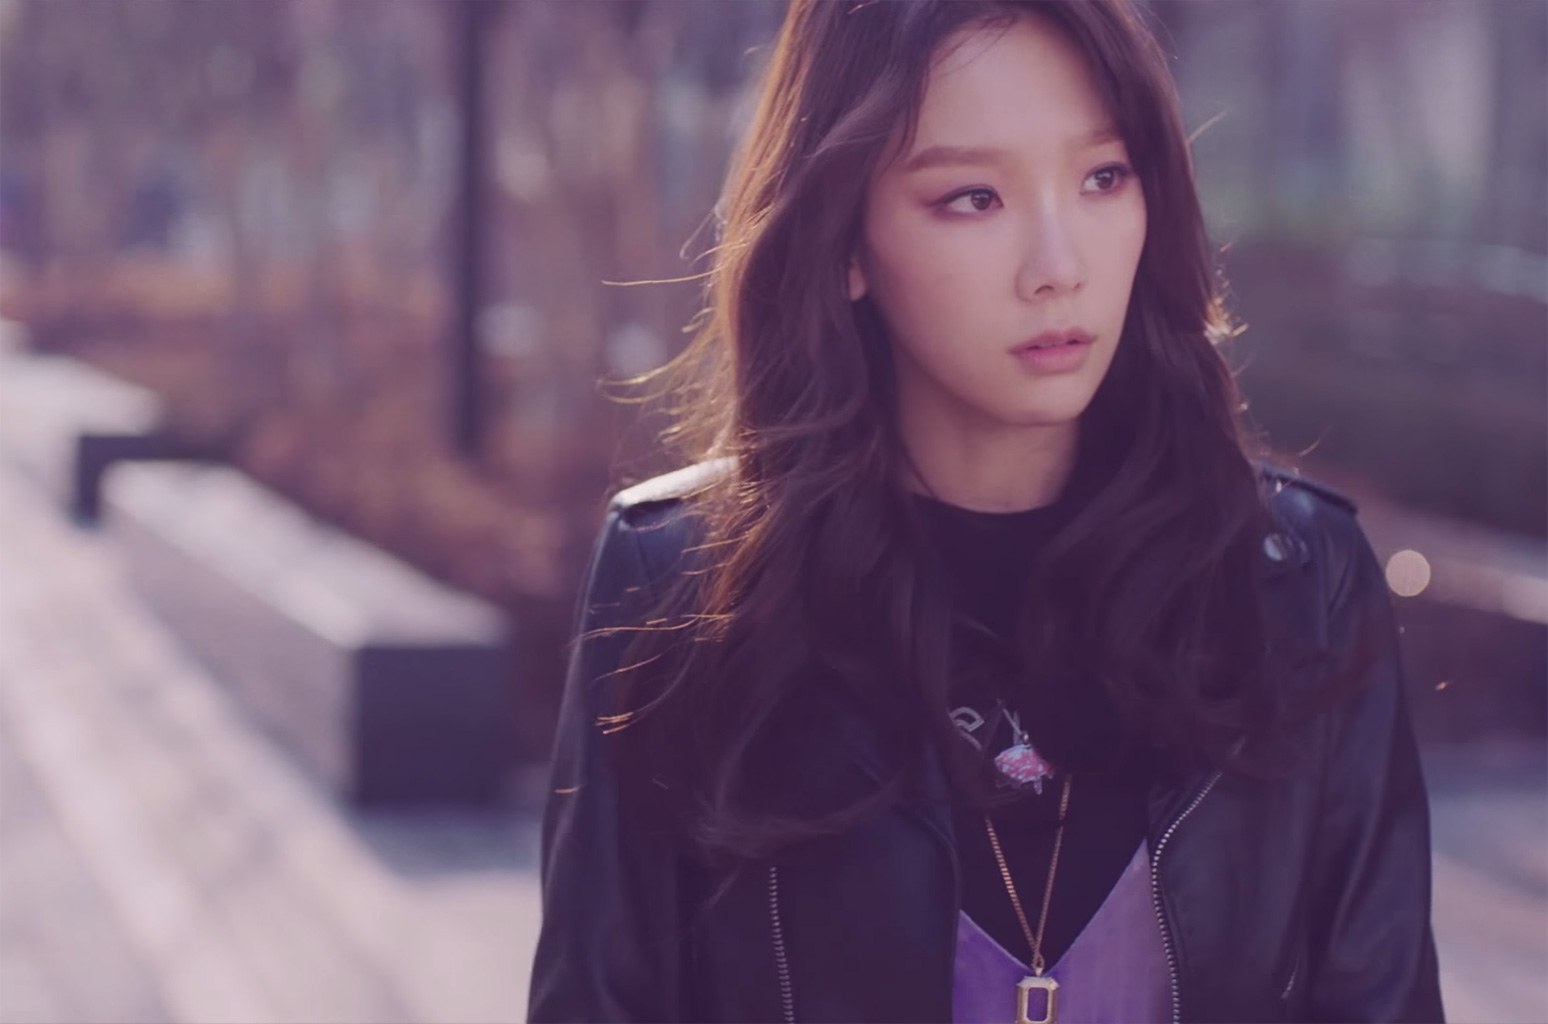 Taeyeon and lee teuk dating after divorce